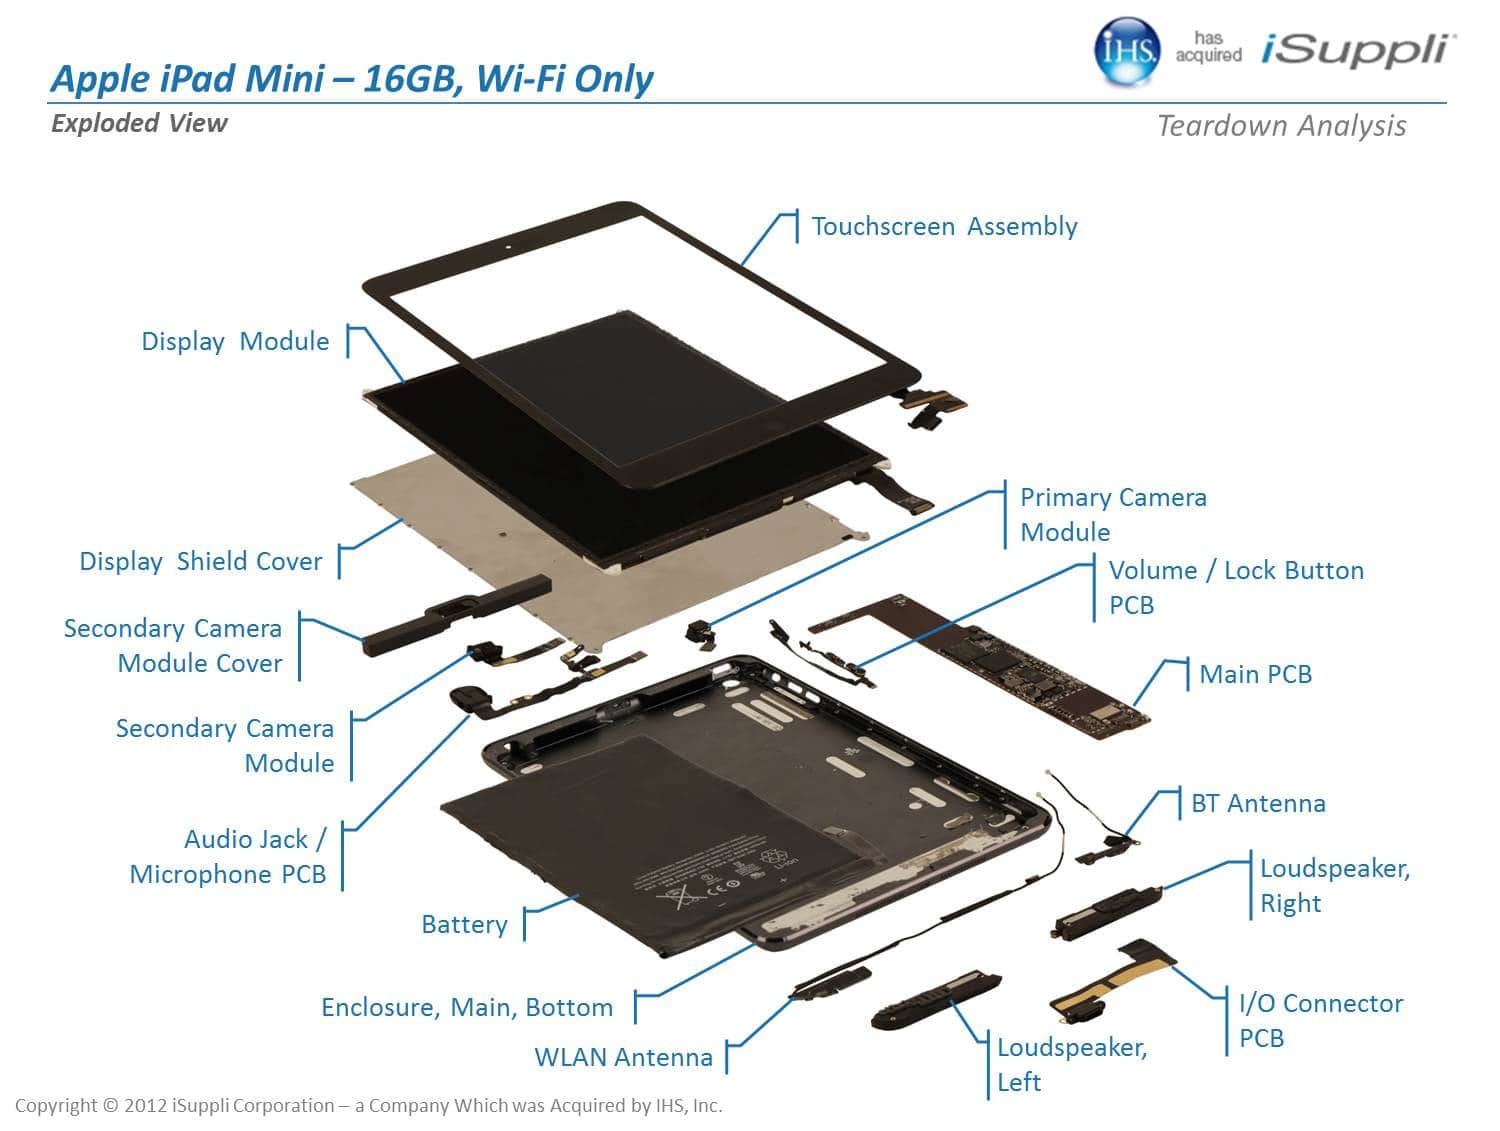 Ipad Mini 2 Parts Diagram - Everything Wiring Diagram Ipad Mini Wiring Diagram on ipad mini manual pdf, ipad mini motherboard diagram, ipad mini schematic, ipad mini troubleshooting guide, ipad mini owner's manual, ipad mini power cord replacement, ipad mini light problems,